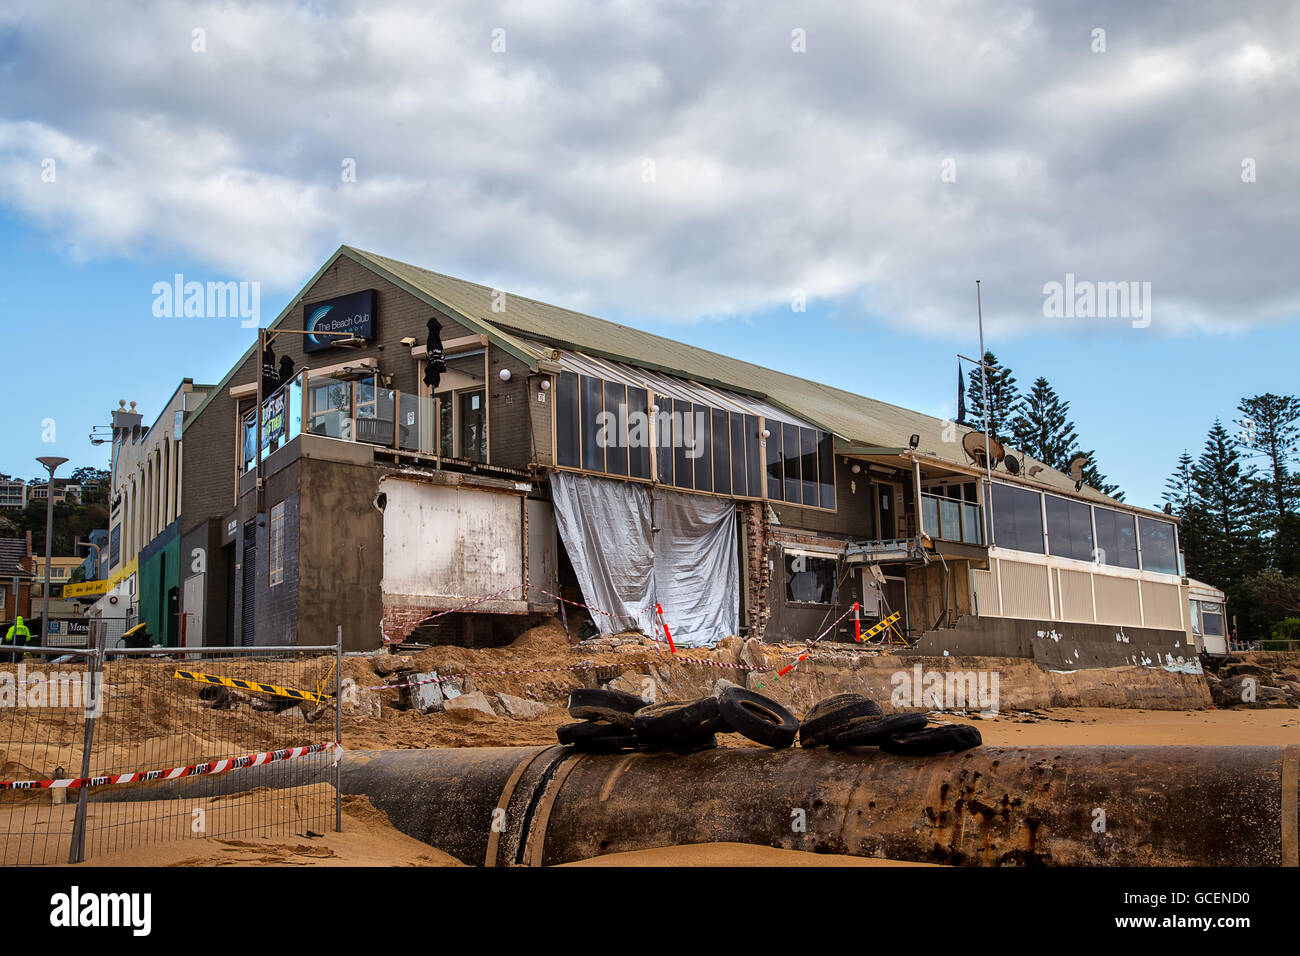 The Collaroy Beach Club shows extensive structural damage after Australia's worst storms for 40 years. - Stock Image